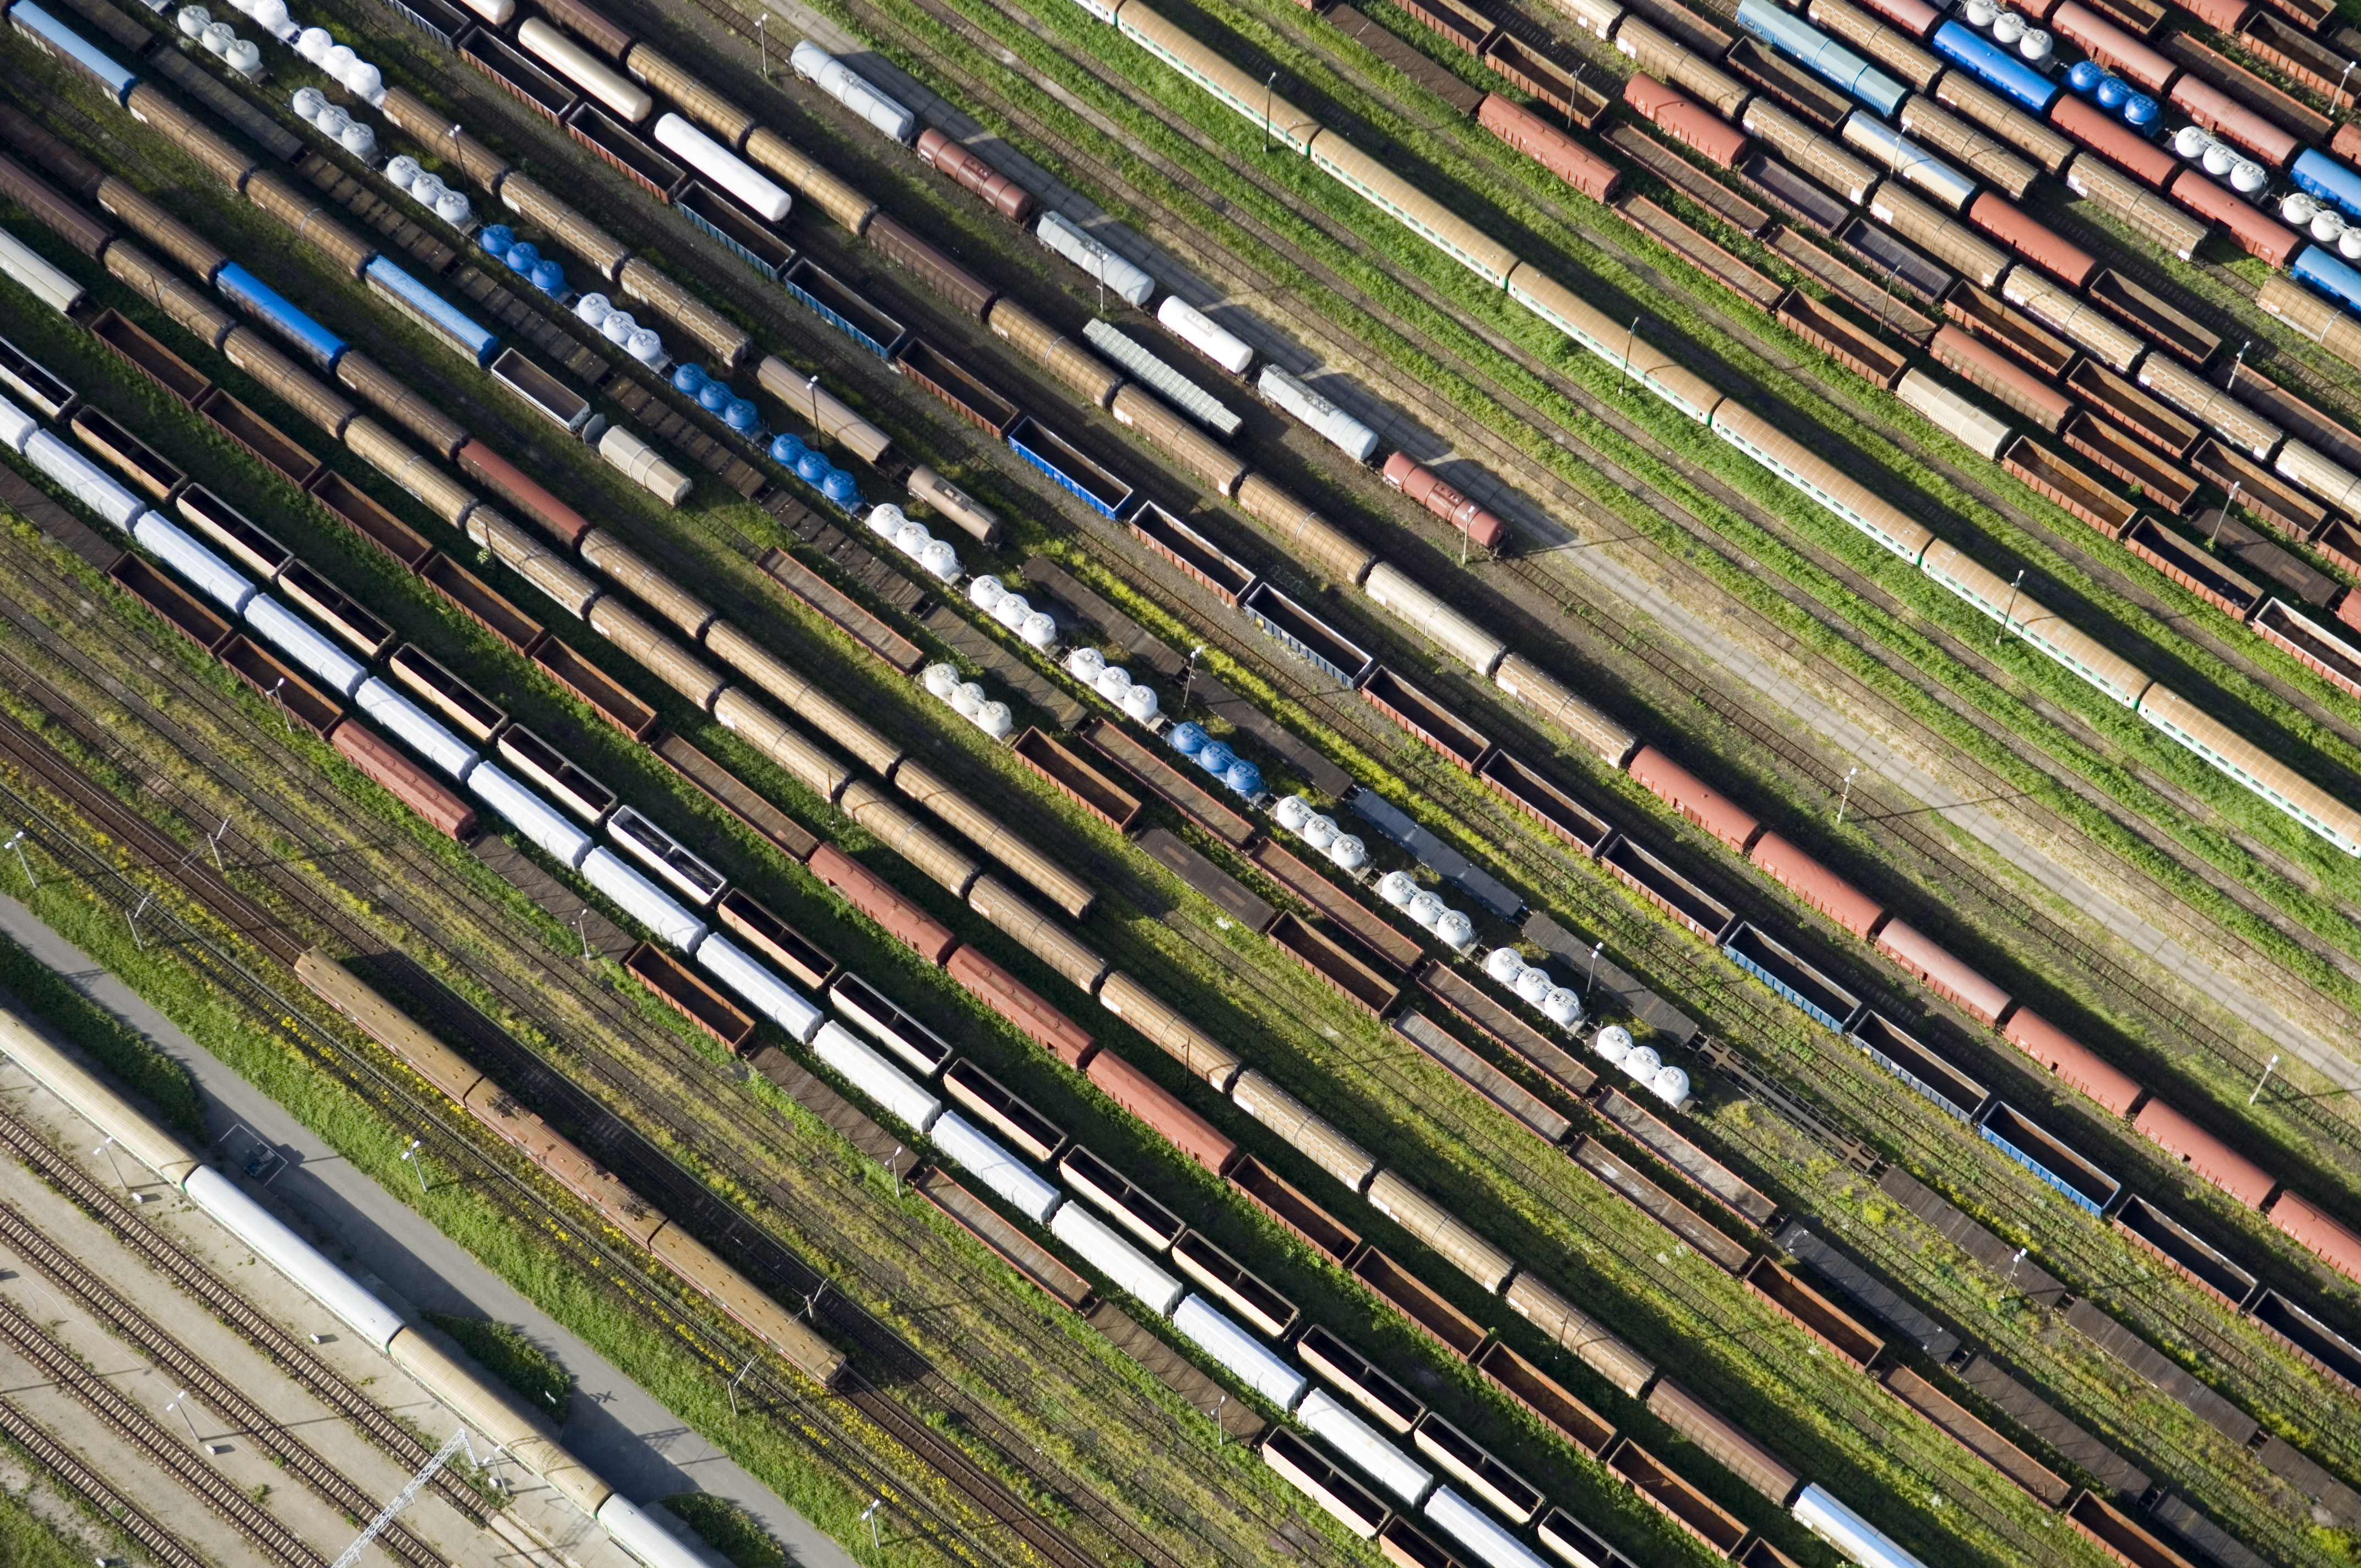 Arial View of a Rail Park